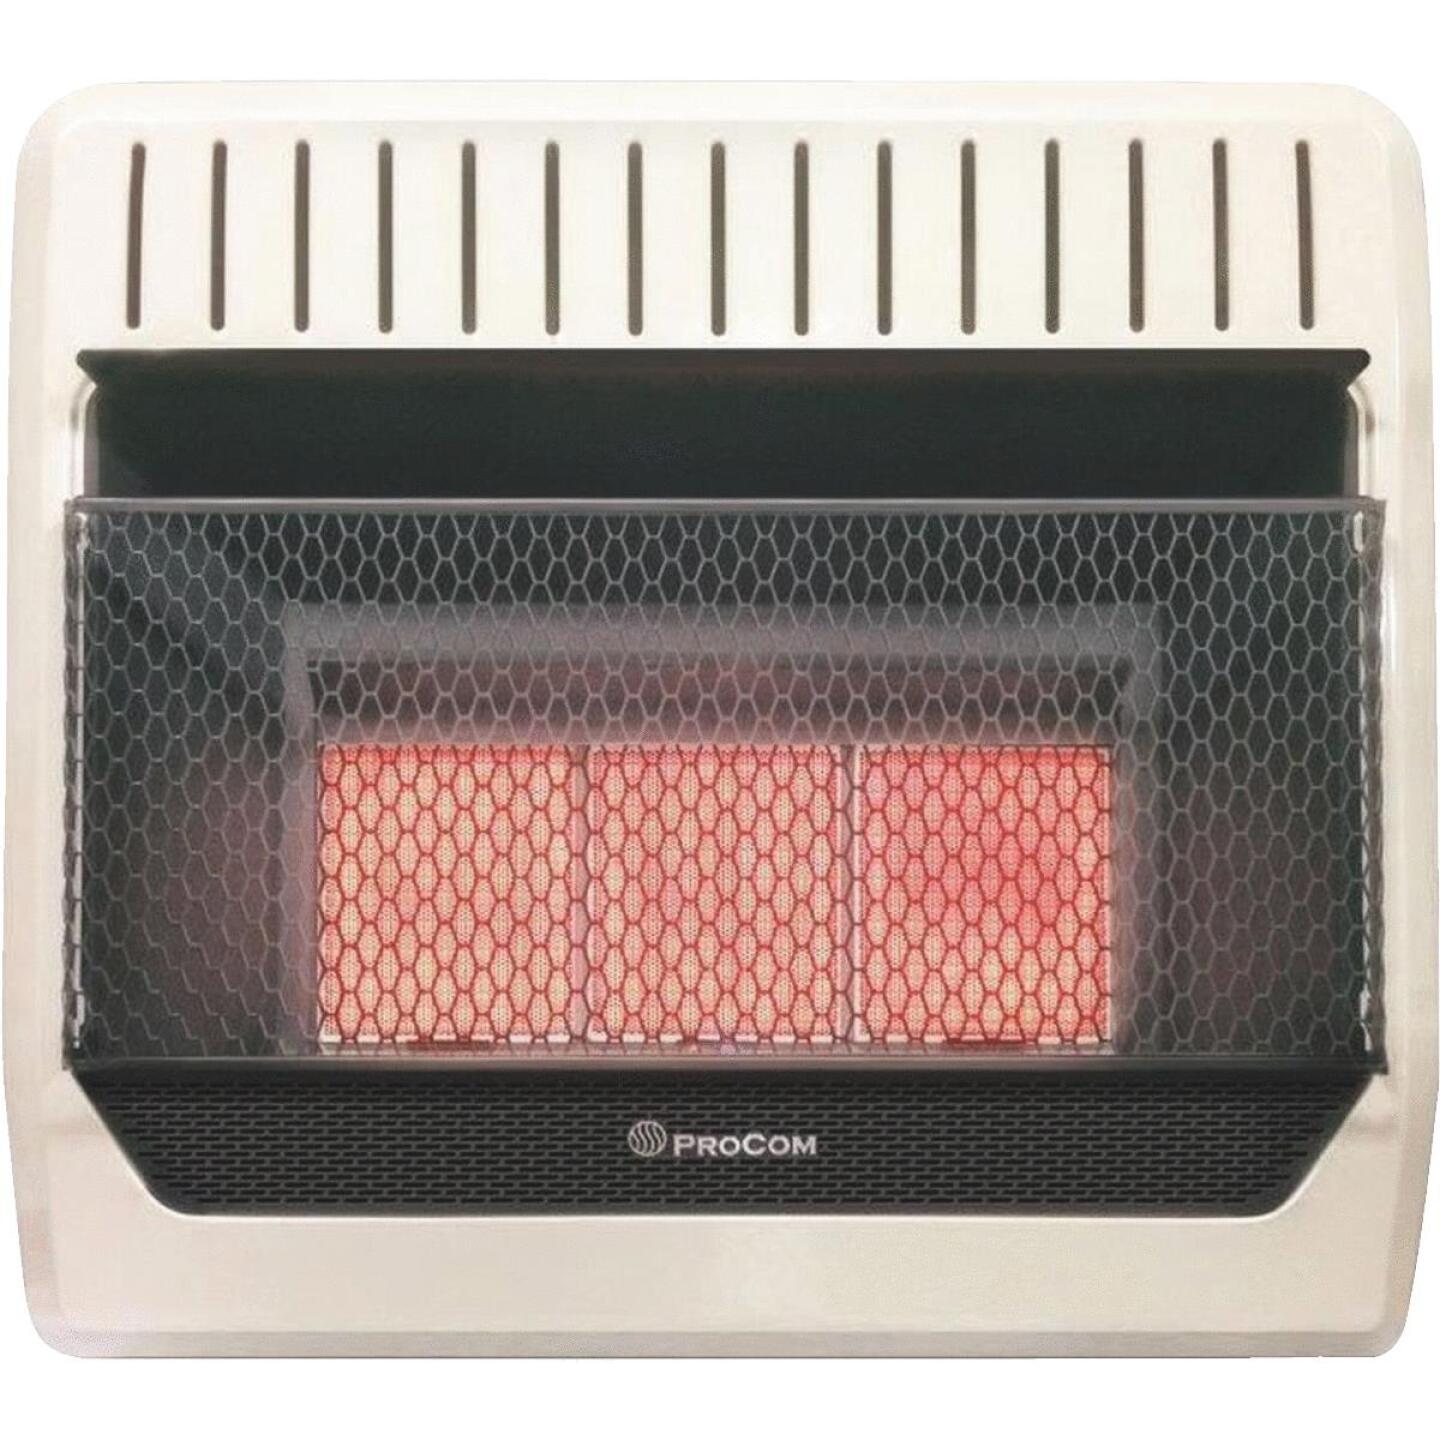 ProCom 28,000 / 30,000 BTU Natural Gas or Propane Gas Vent-Free Infrared Plaque Gas Wall Heater Image 1